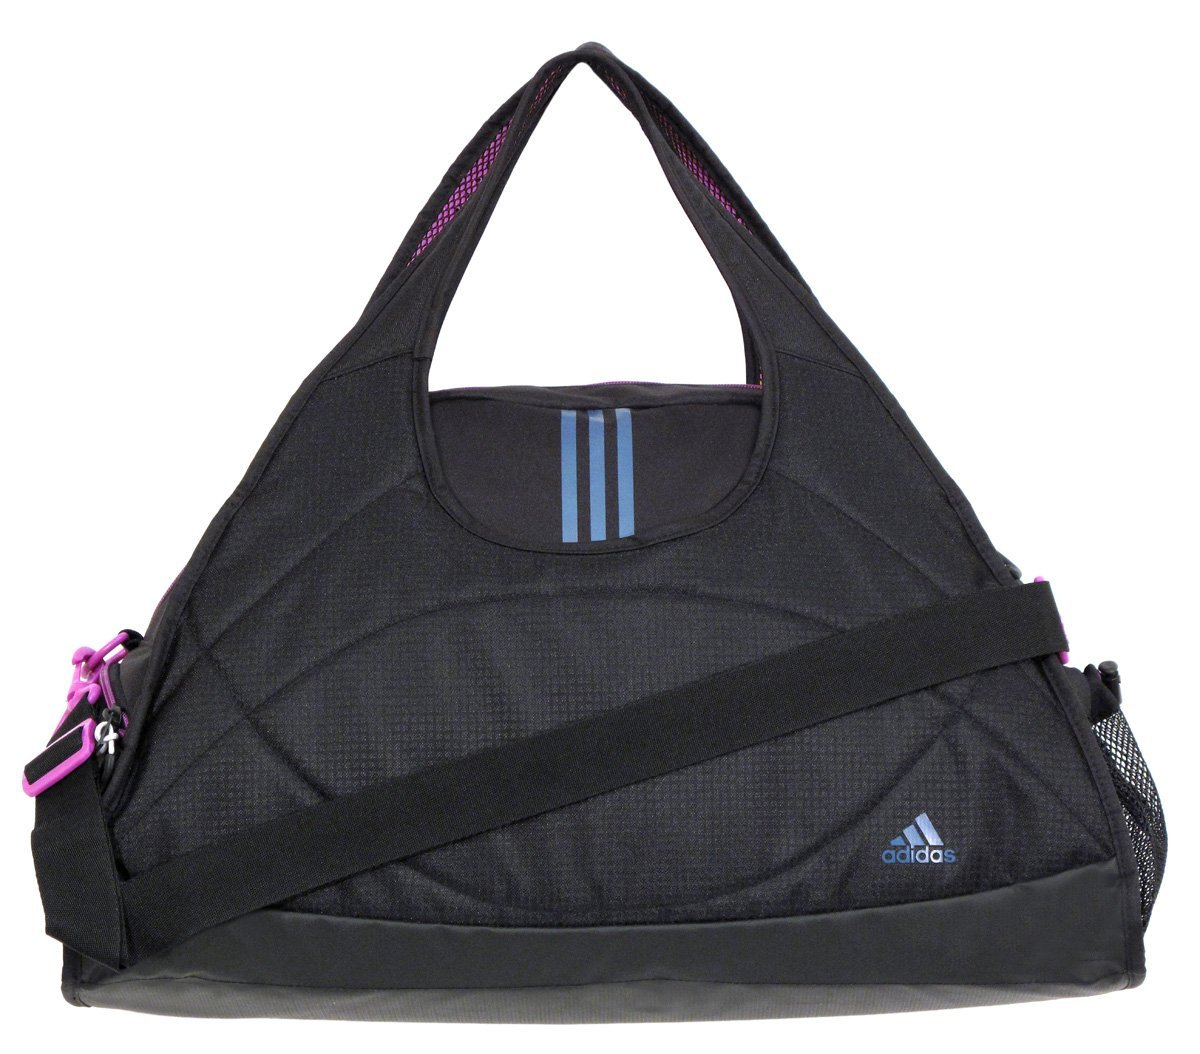 Rated 5 out of 5 by ConnieA from GREAT TO GO GYM BAG I got the bag in Black modern look. The size is perfect for my soccer gear or just a gym day. The size is perfect for my soccer gear or just a gym Price: $